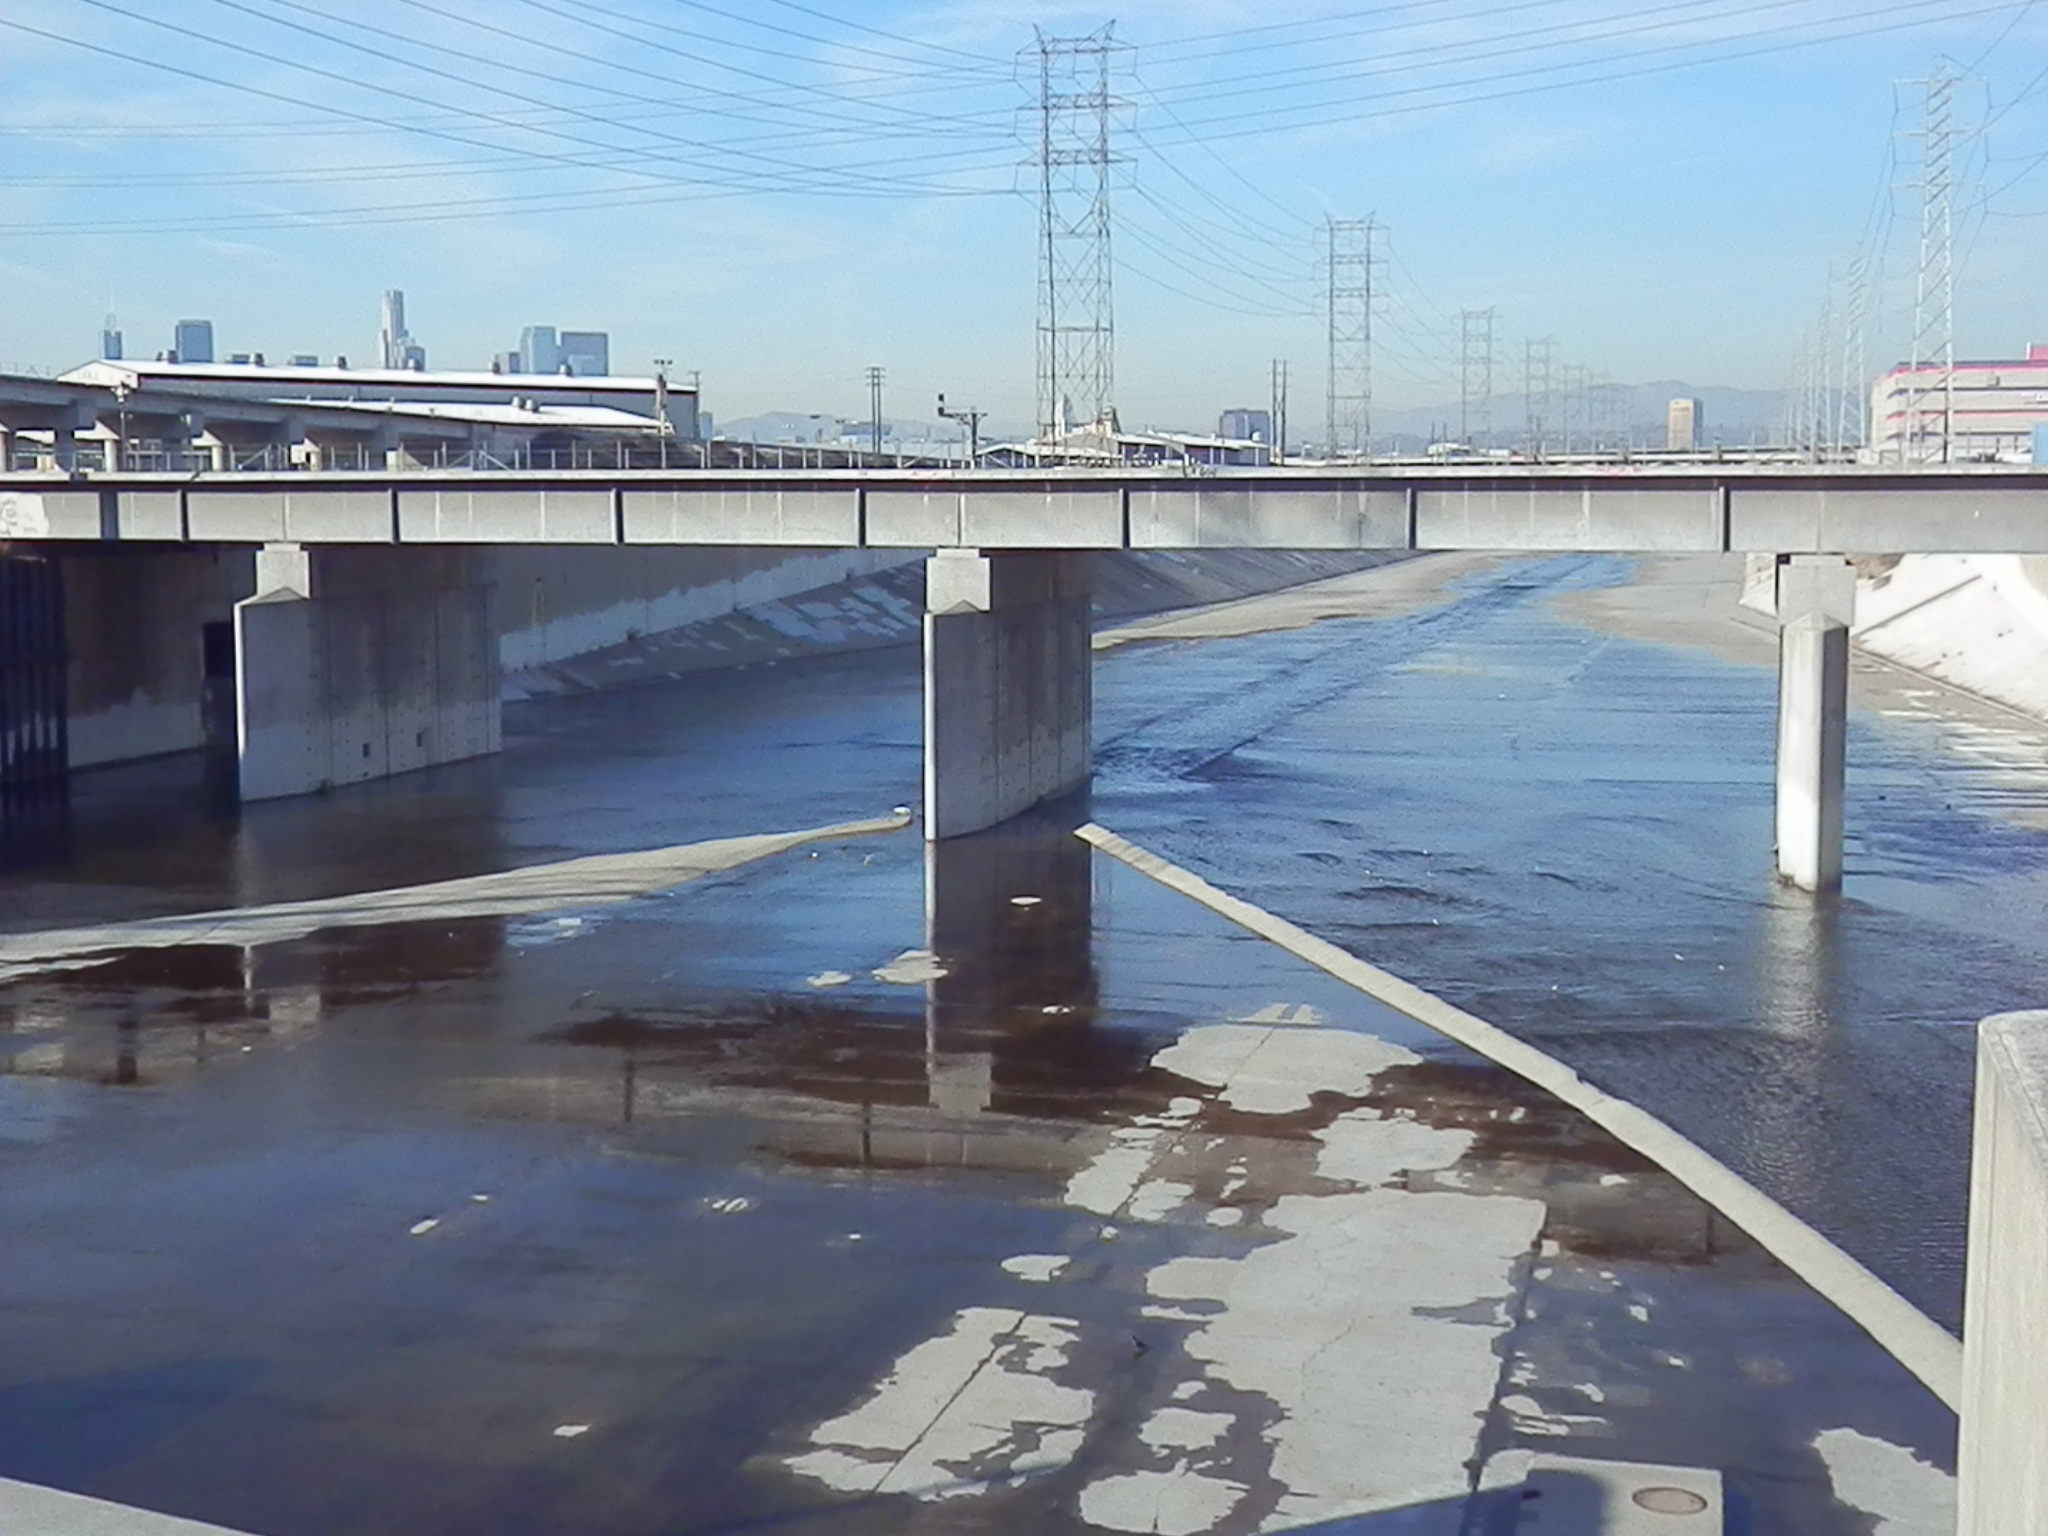 (An image of the water-less Los Angeles River, with the downtown skyline in the background. The city has been trying in vain to revive the riverfront for decades. / photo by Scott Beyer)